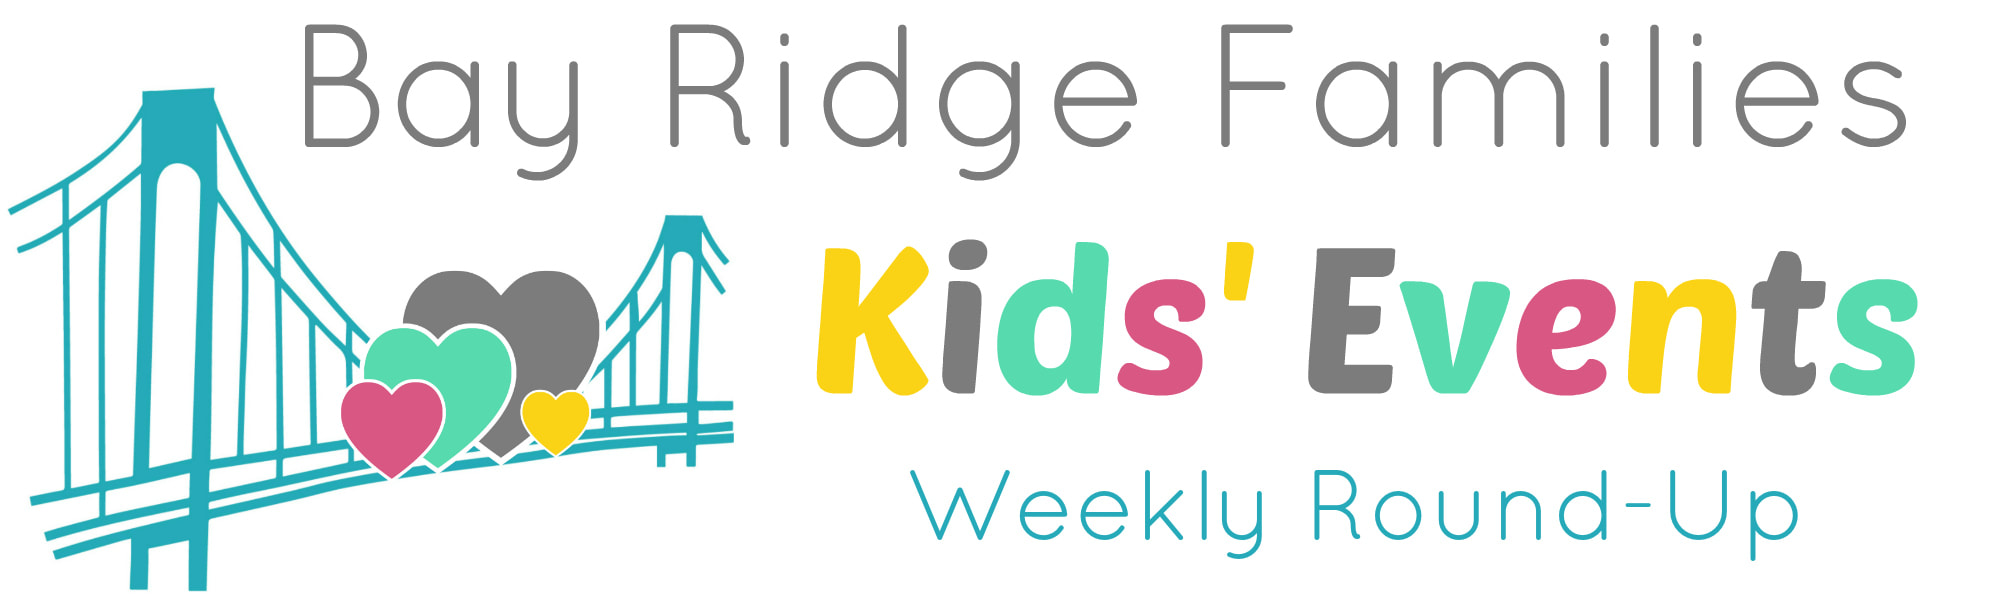 Kids Events going on in the Greater Bay Ridge area of Brooklyn for the week of January 4 - 10, 2018